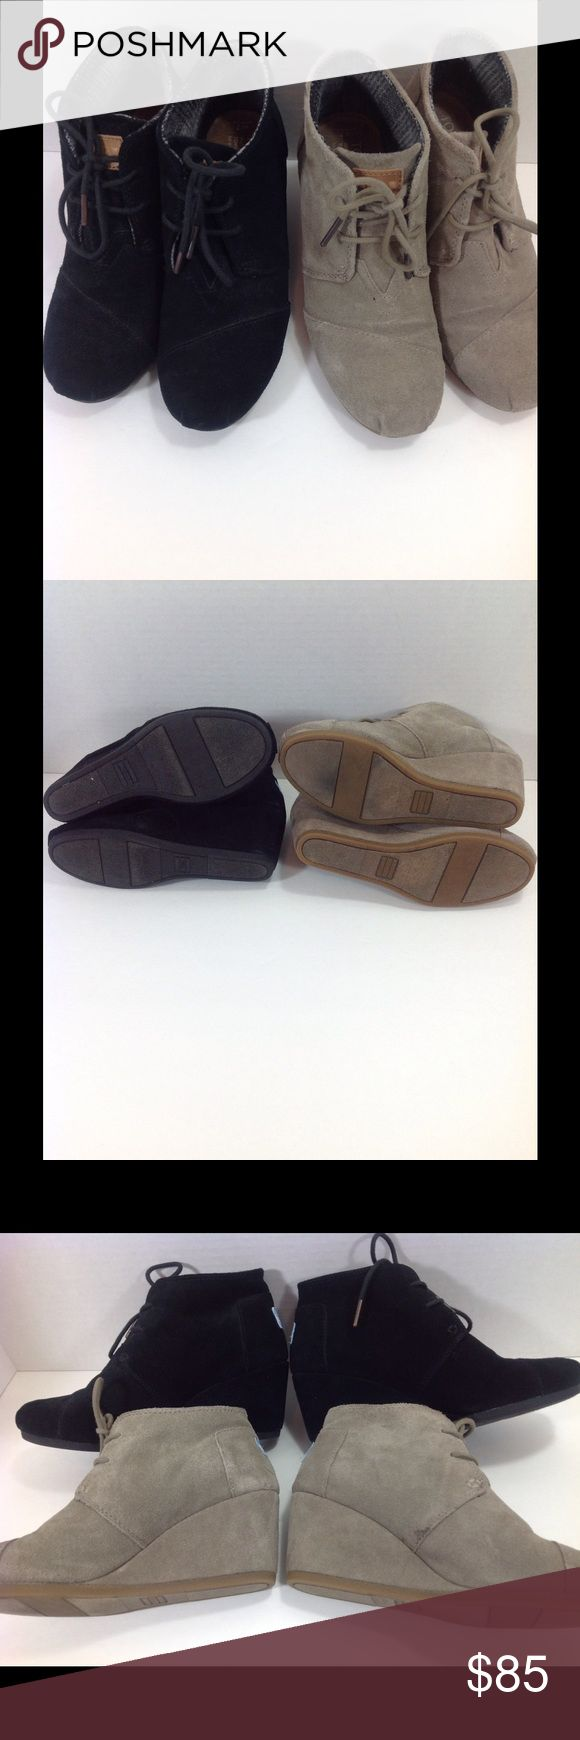 Toms Desert Wedges tan & black size 7 gently used Toms Desert Wedges tan & black size 7 gently used comes from a non smoking, immaculate home TOMS Shoes Ankle Boots & Booties